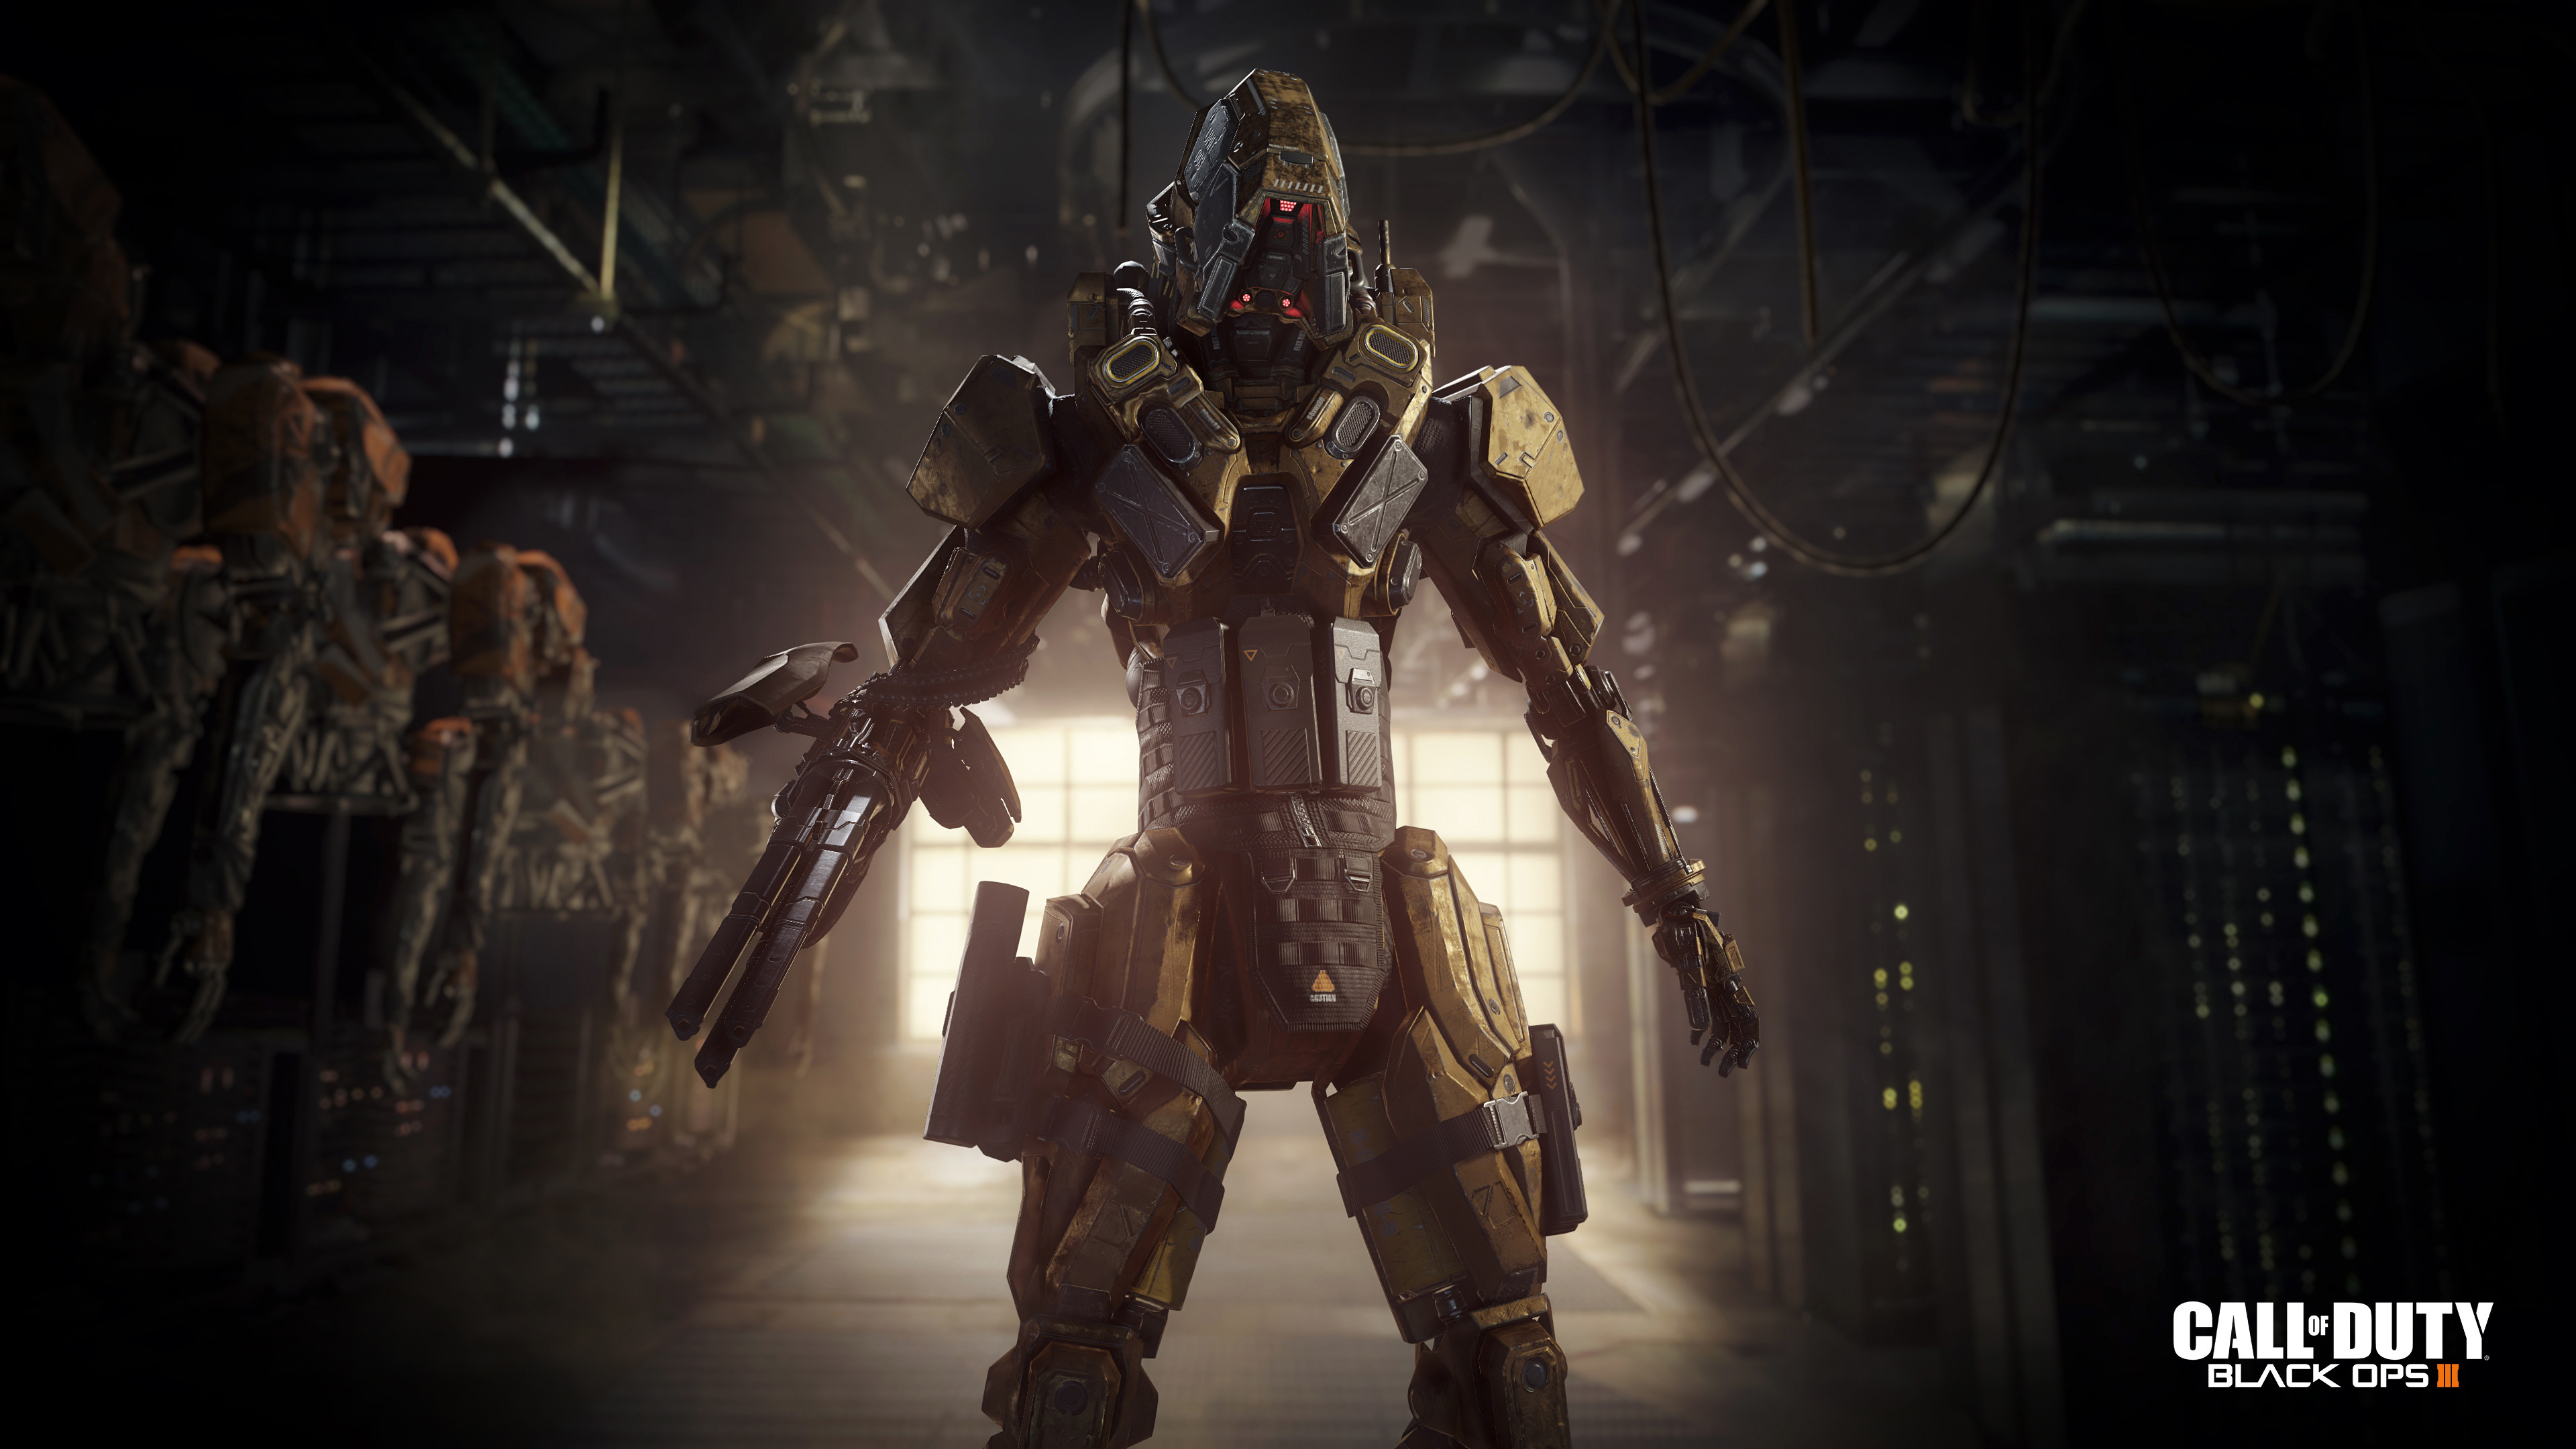 call_of_duty_black_ops_3_specialist_reaper-HD.jpg (3840×2160) | Wallpapers  Games | Pinterest | Black ops, Cod bo3 and Advanced warfare